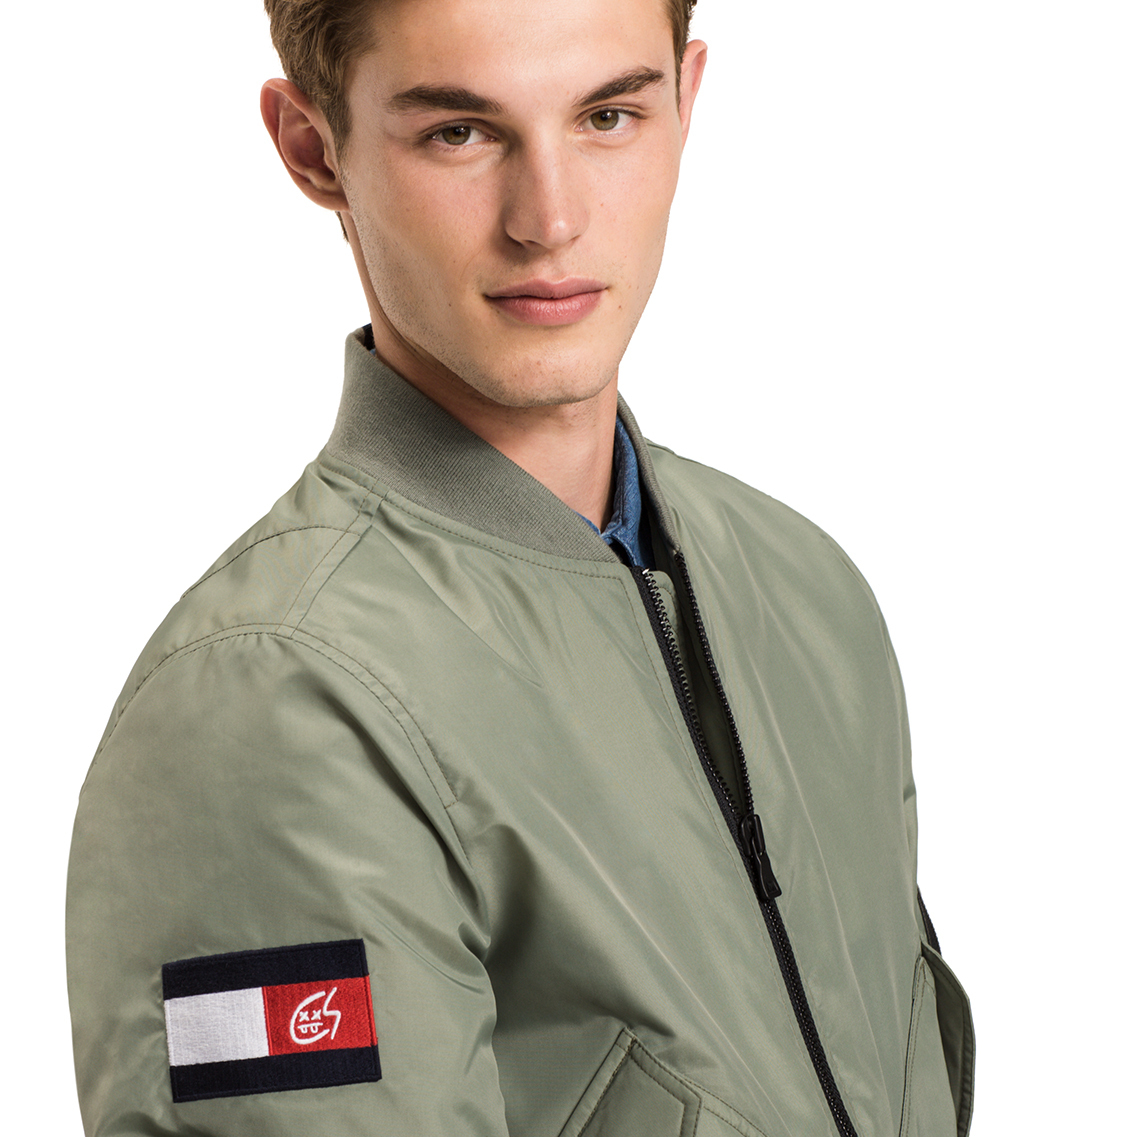 Tommy Hilfiger X Thechainsmokers Army Bomber ジャケット MA-1